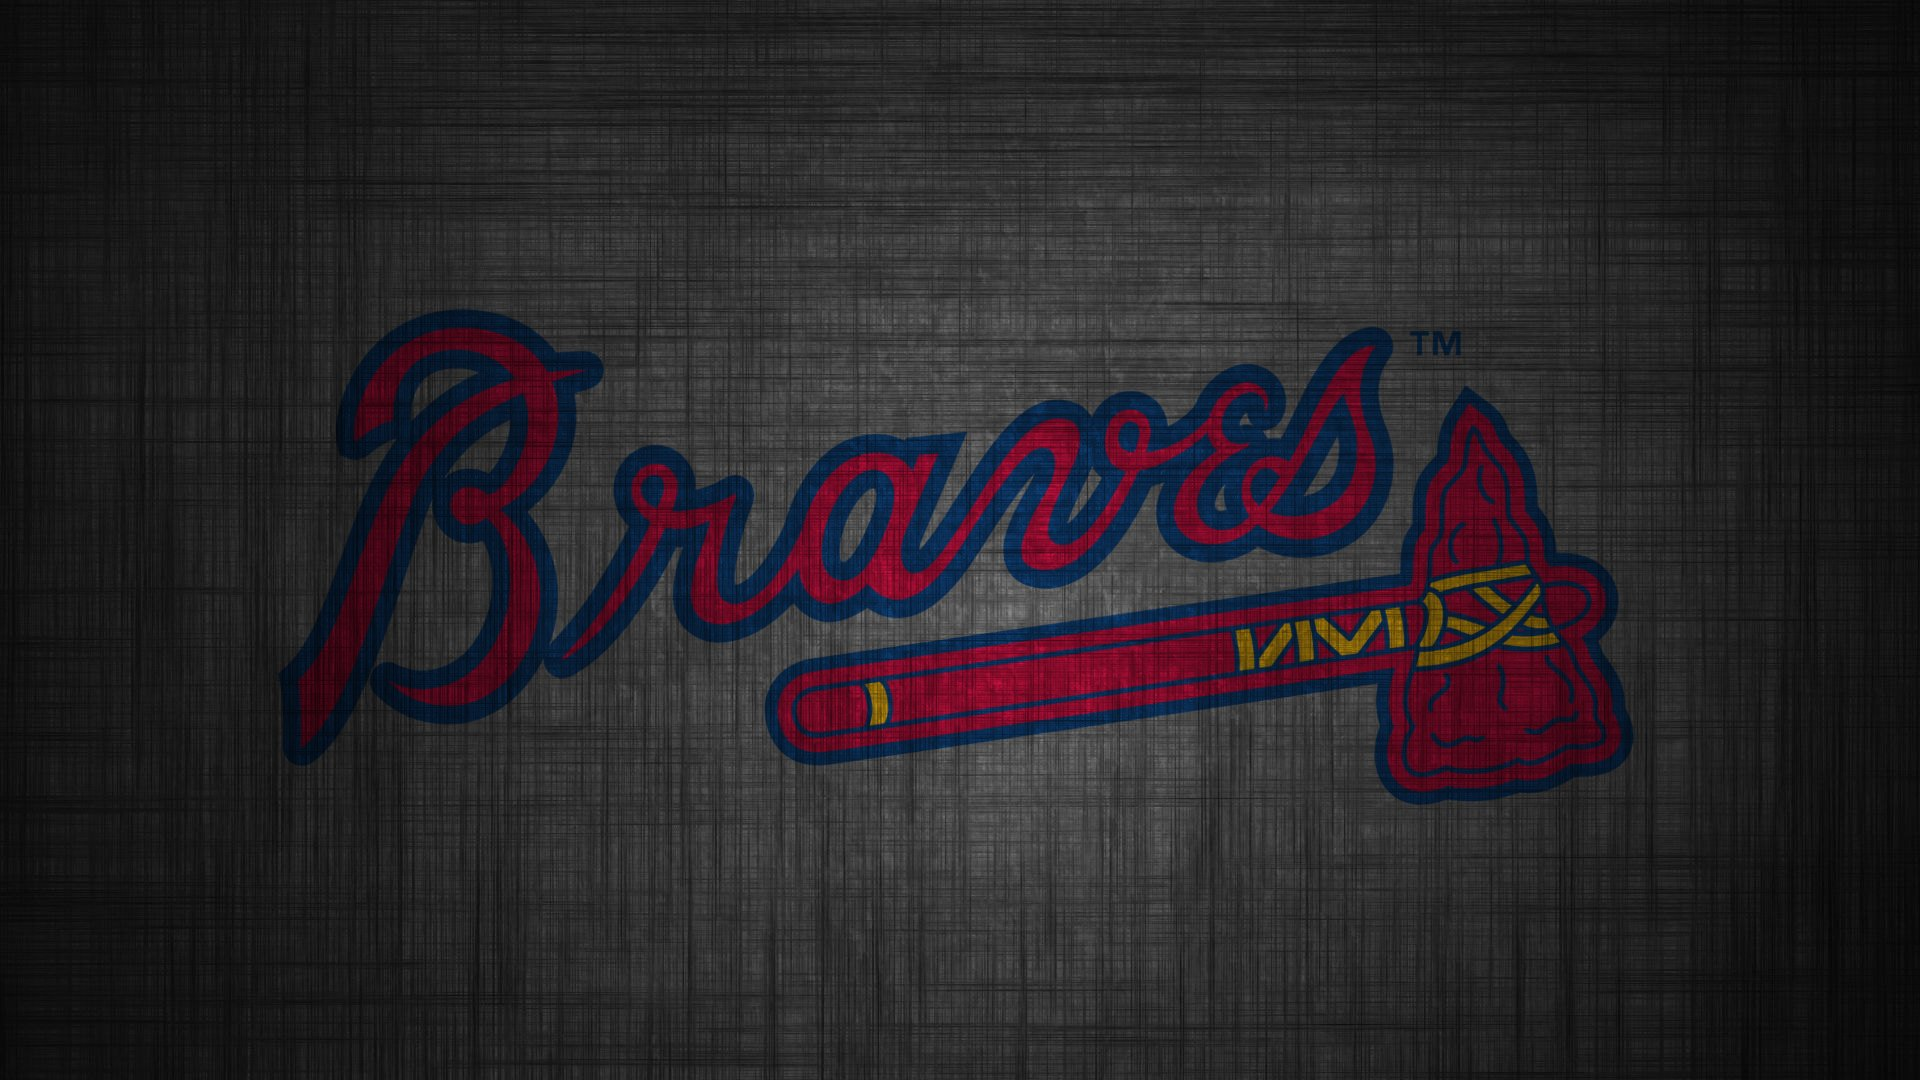 Atlanta Braves Iphone Wallpaper Baseball Iphone Wallpapers Page Ohlays 1920x1080